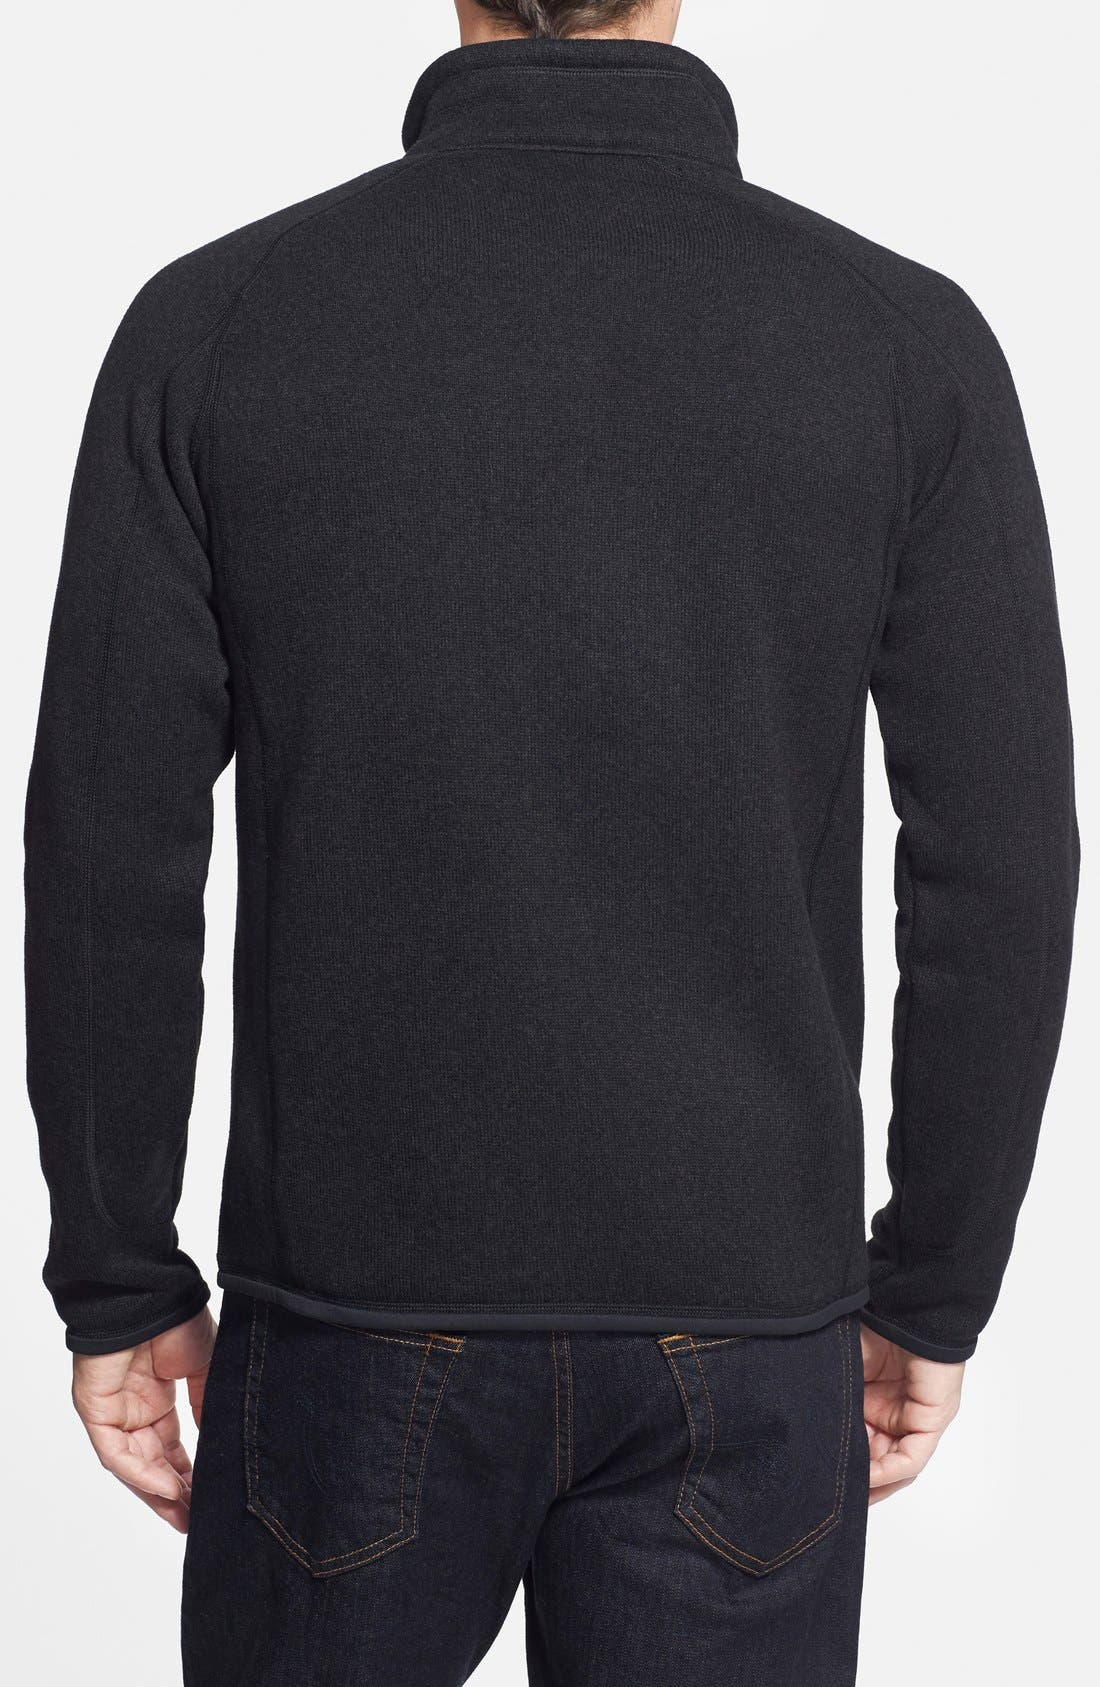 PATAGONIA, Better Sweater Zip Front Jacket, Alternate thumbnail 9, color, BLACK